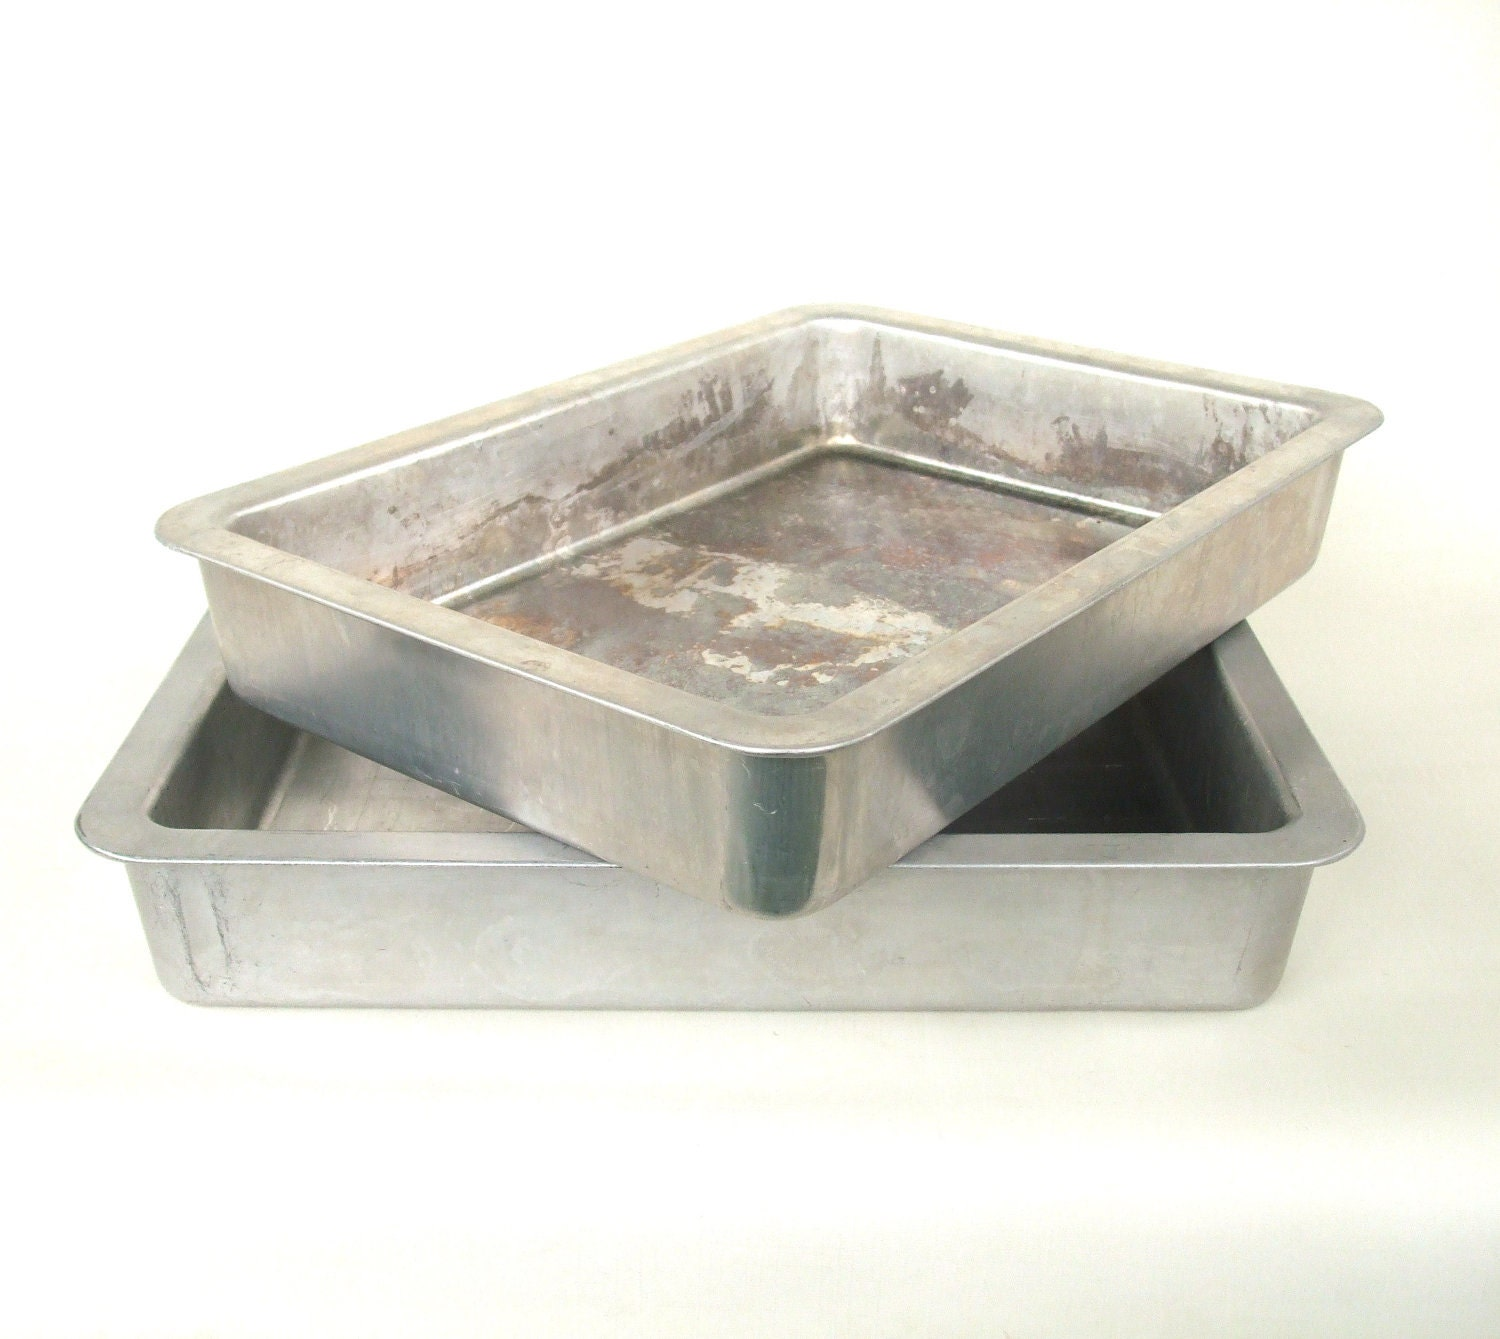 Rema Cushionaire 9 X 13 Cake Pans Insulated Aluminum